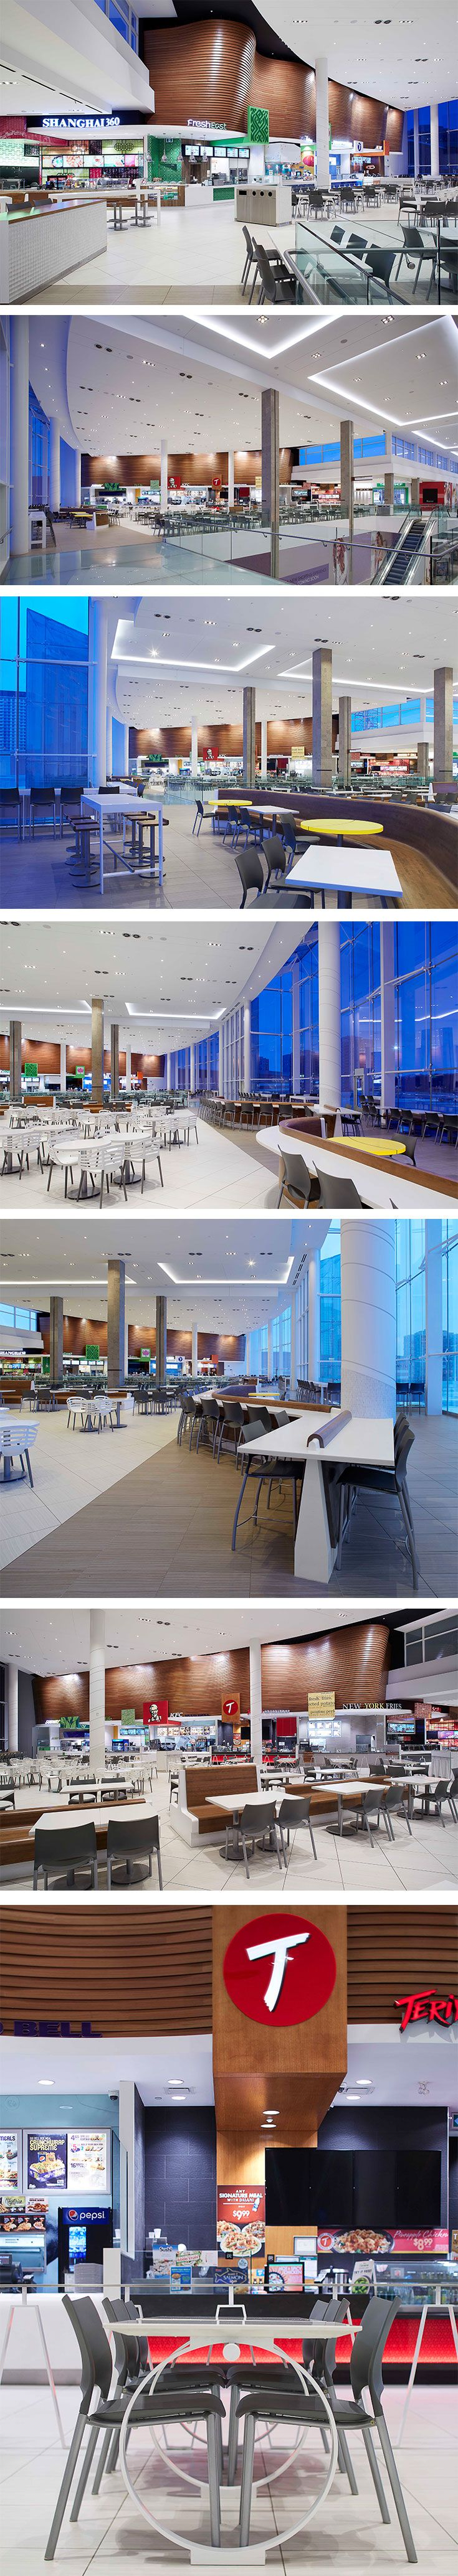 Best 20 food court ideas on pinterest for Architecture firms mississauga